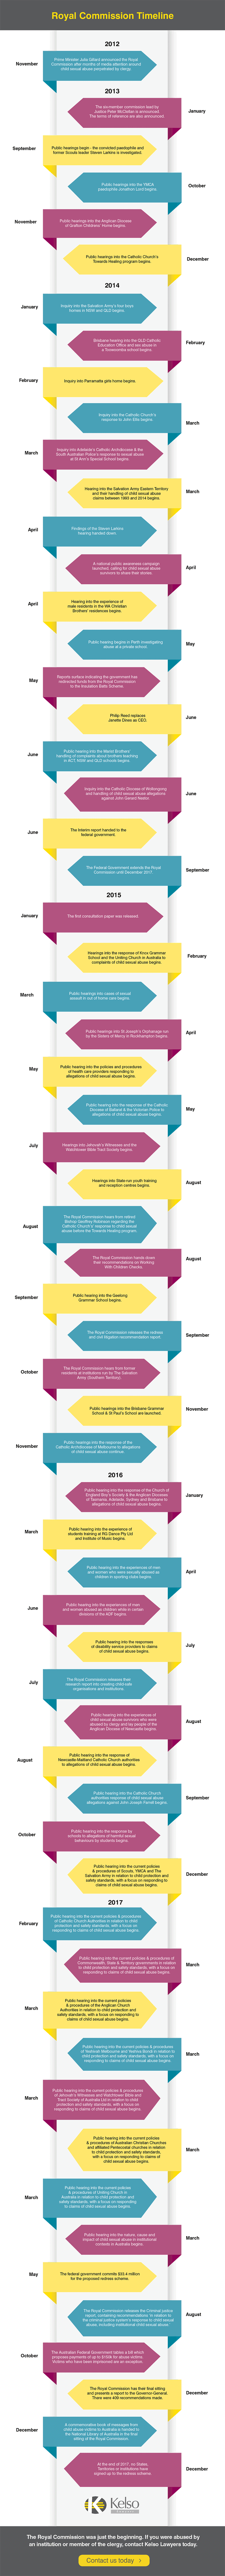 Royal Commission Into Institutional Abuse Timeline